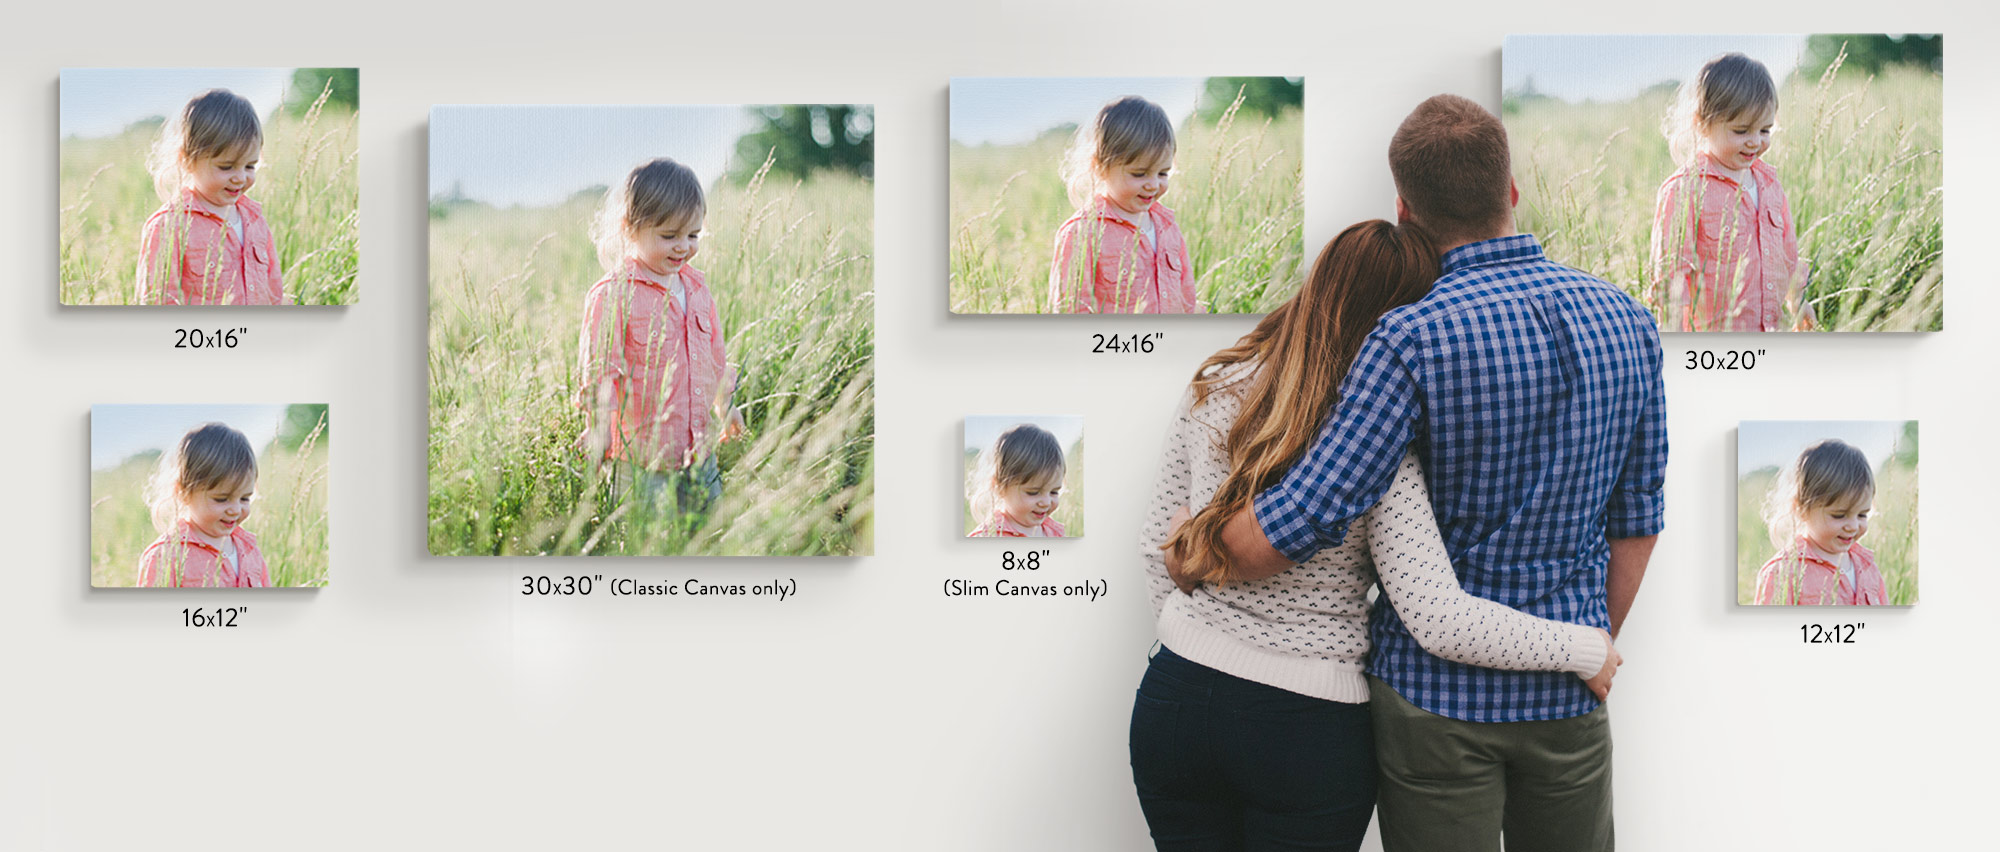 Canvas print sizes